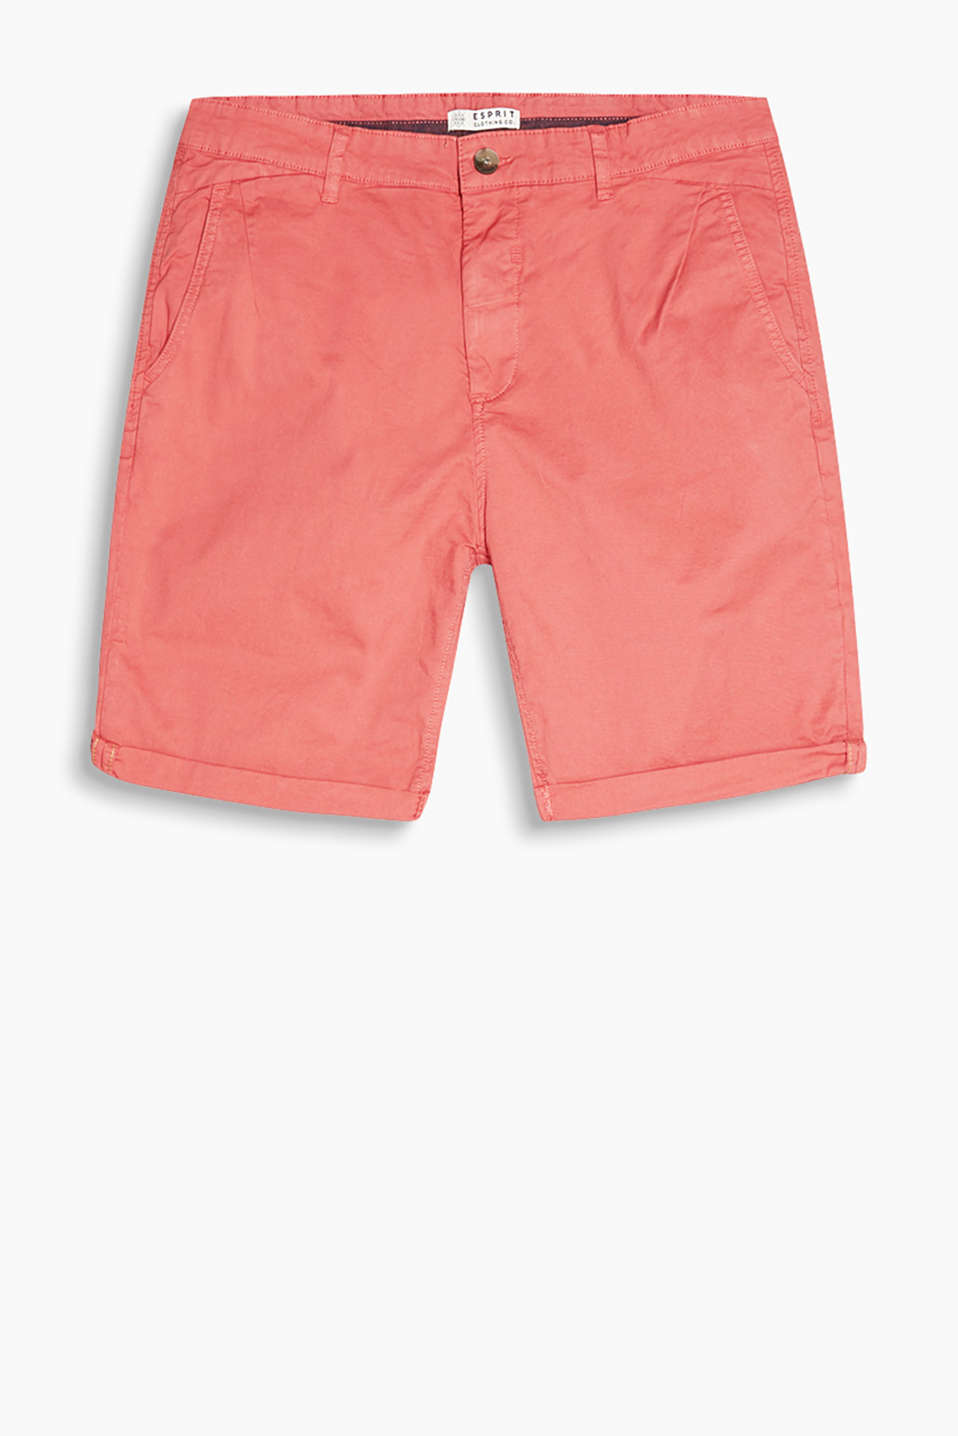 In a summery style: shorts in a bold colour